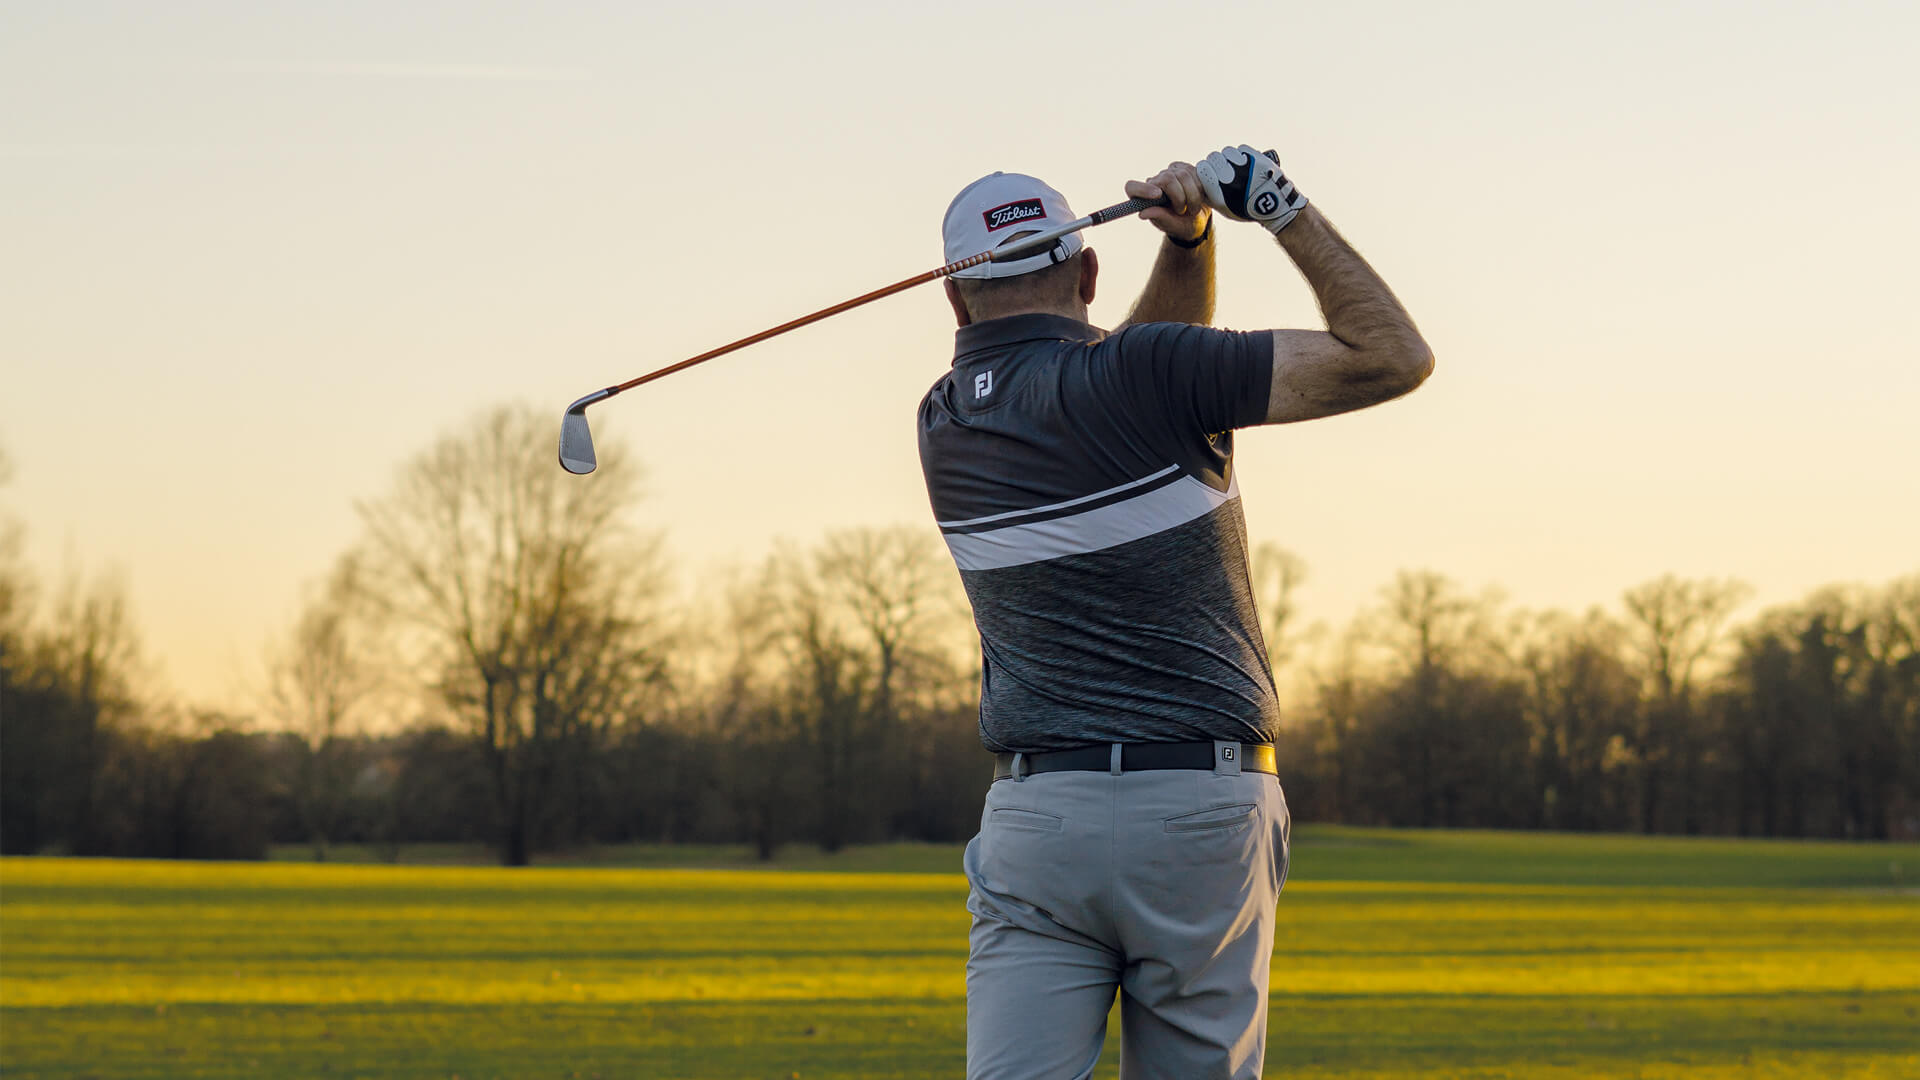 https://golfclub-peckeloh.de/wp-content/uploads/2019/06/header_firmengolf.jpg